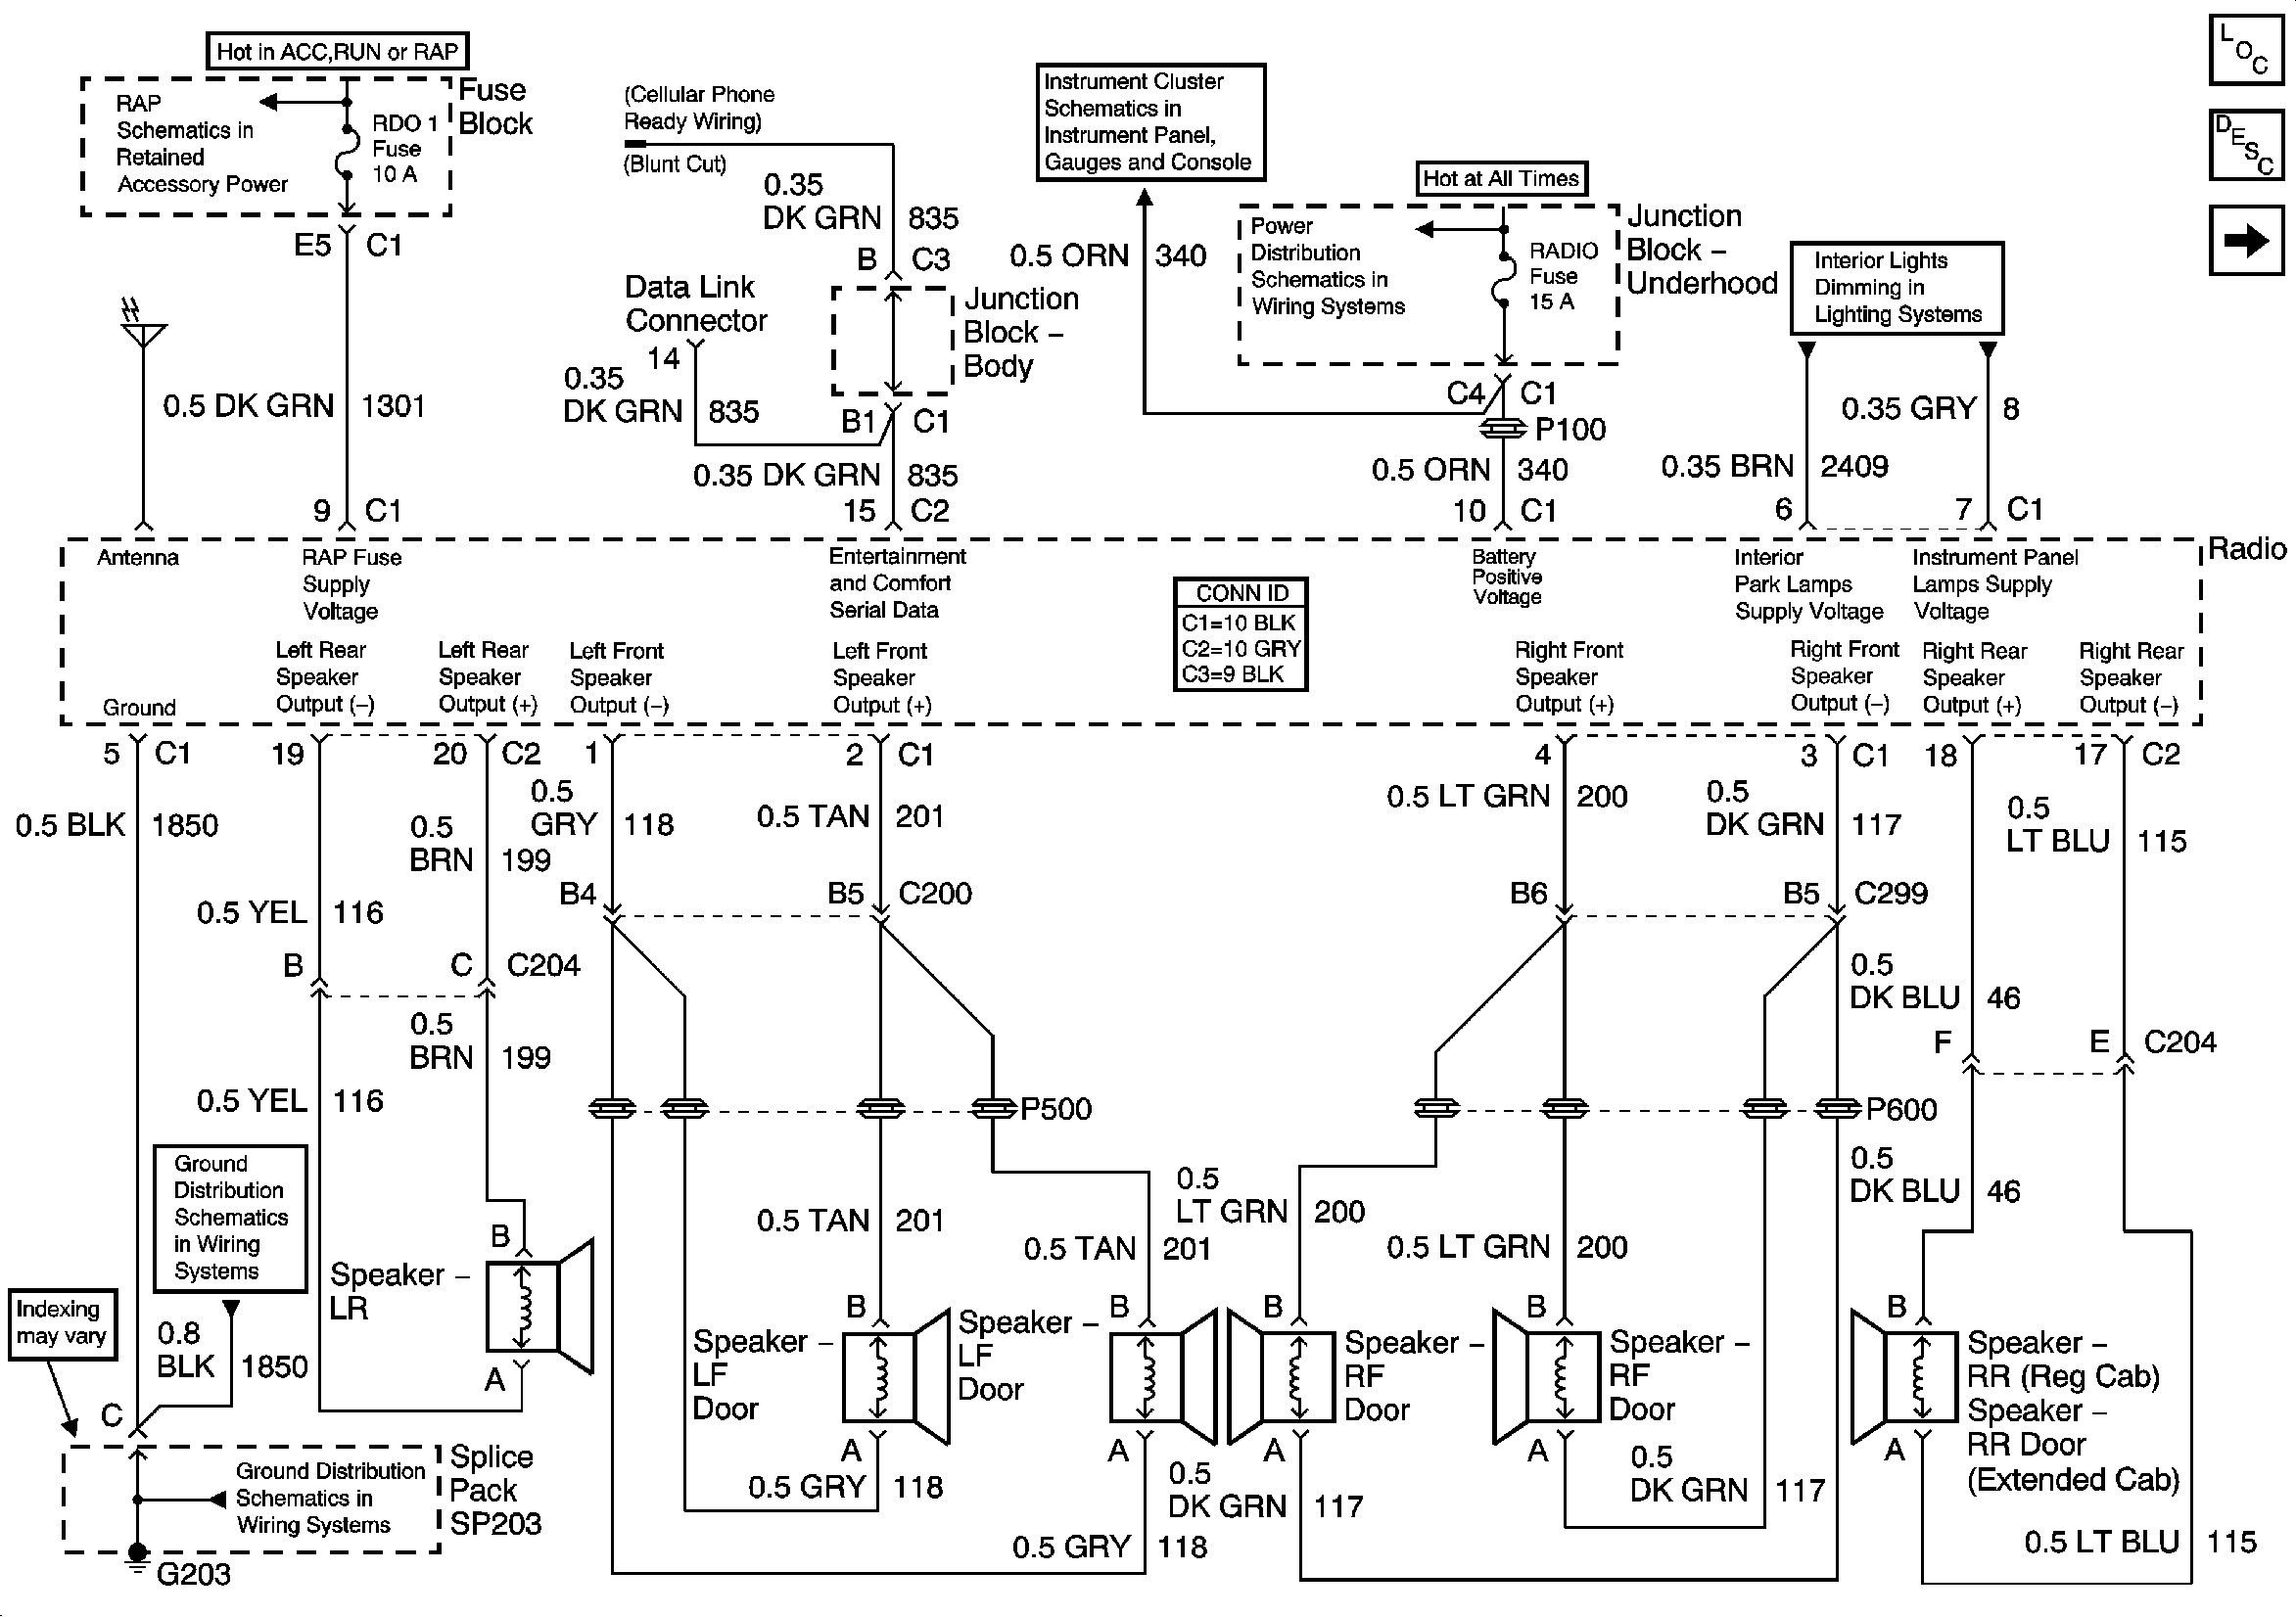 2001 Chevy Tahoe Radio Wiring Diagram Unique In 2020 Chevy Silverado 2004 Chevy Silverado 2003 Chevy Silverado